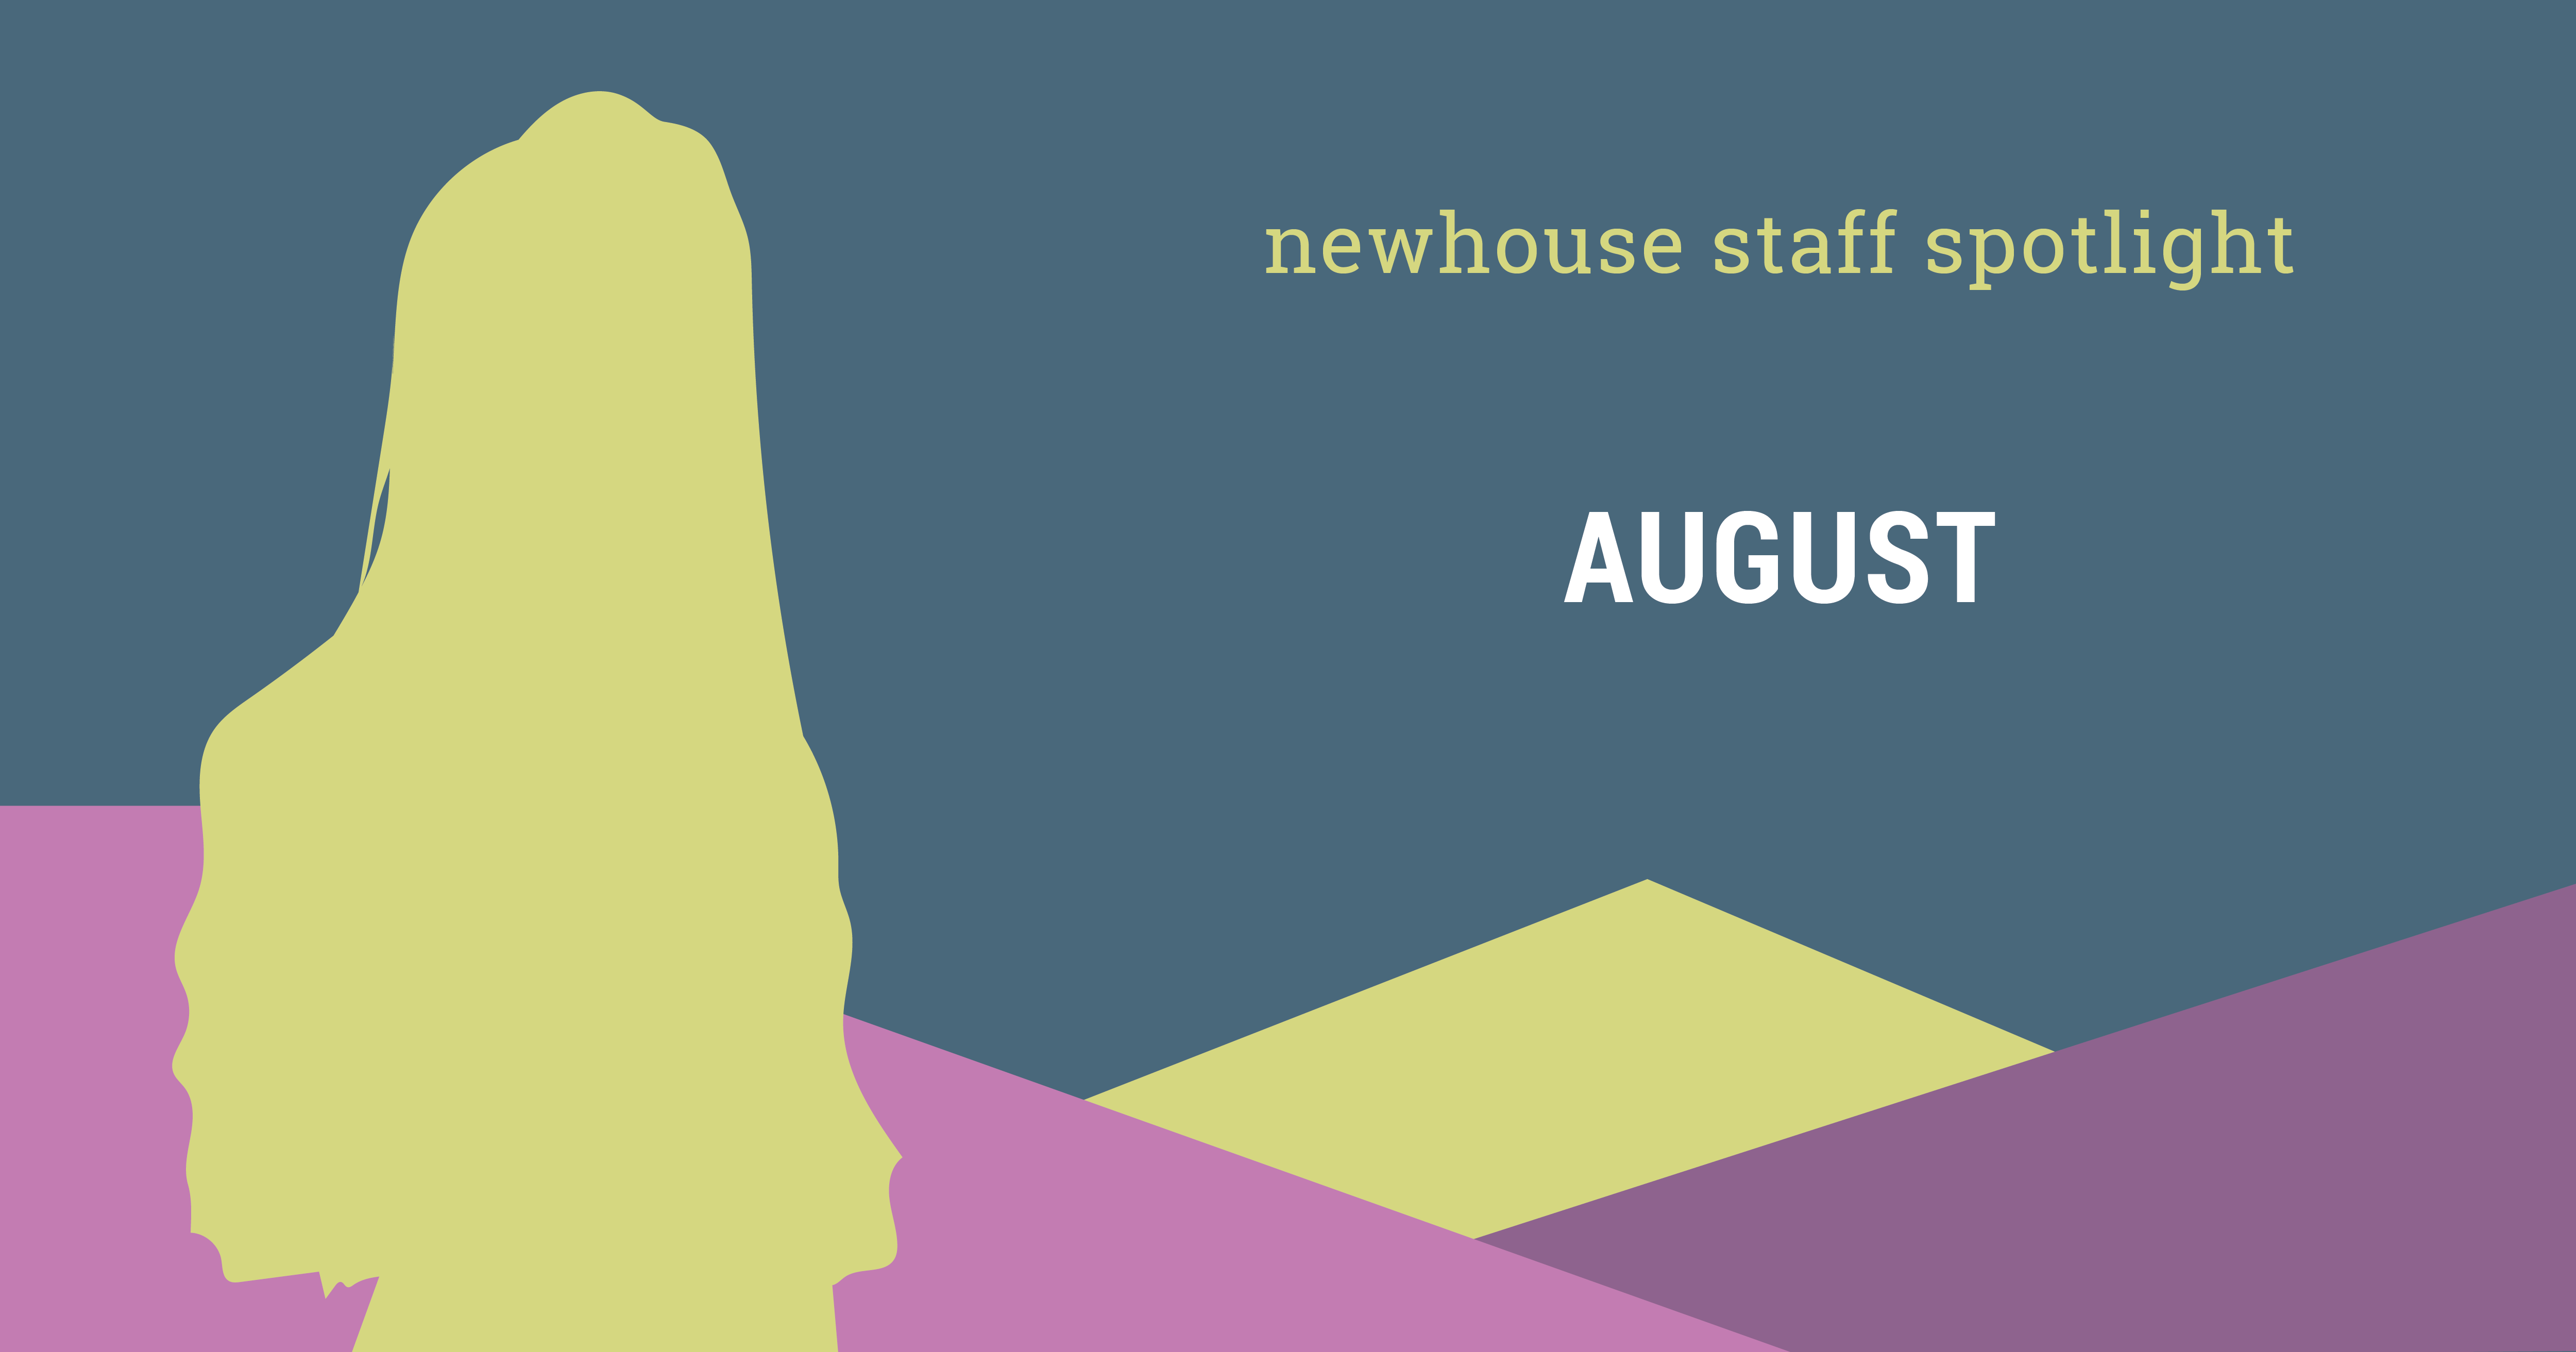 Reads: newhouse staff spotlight: august